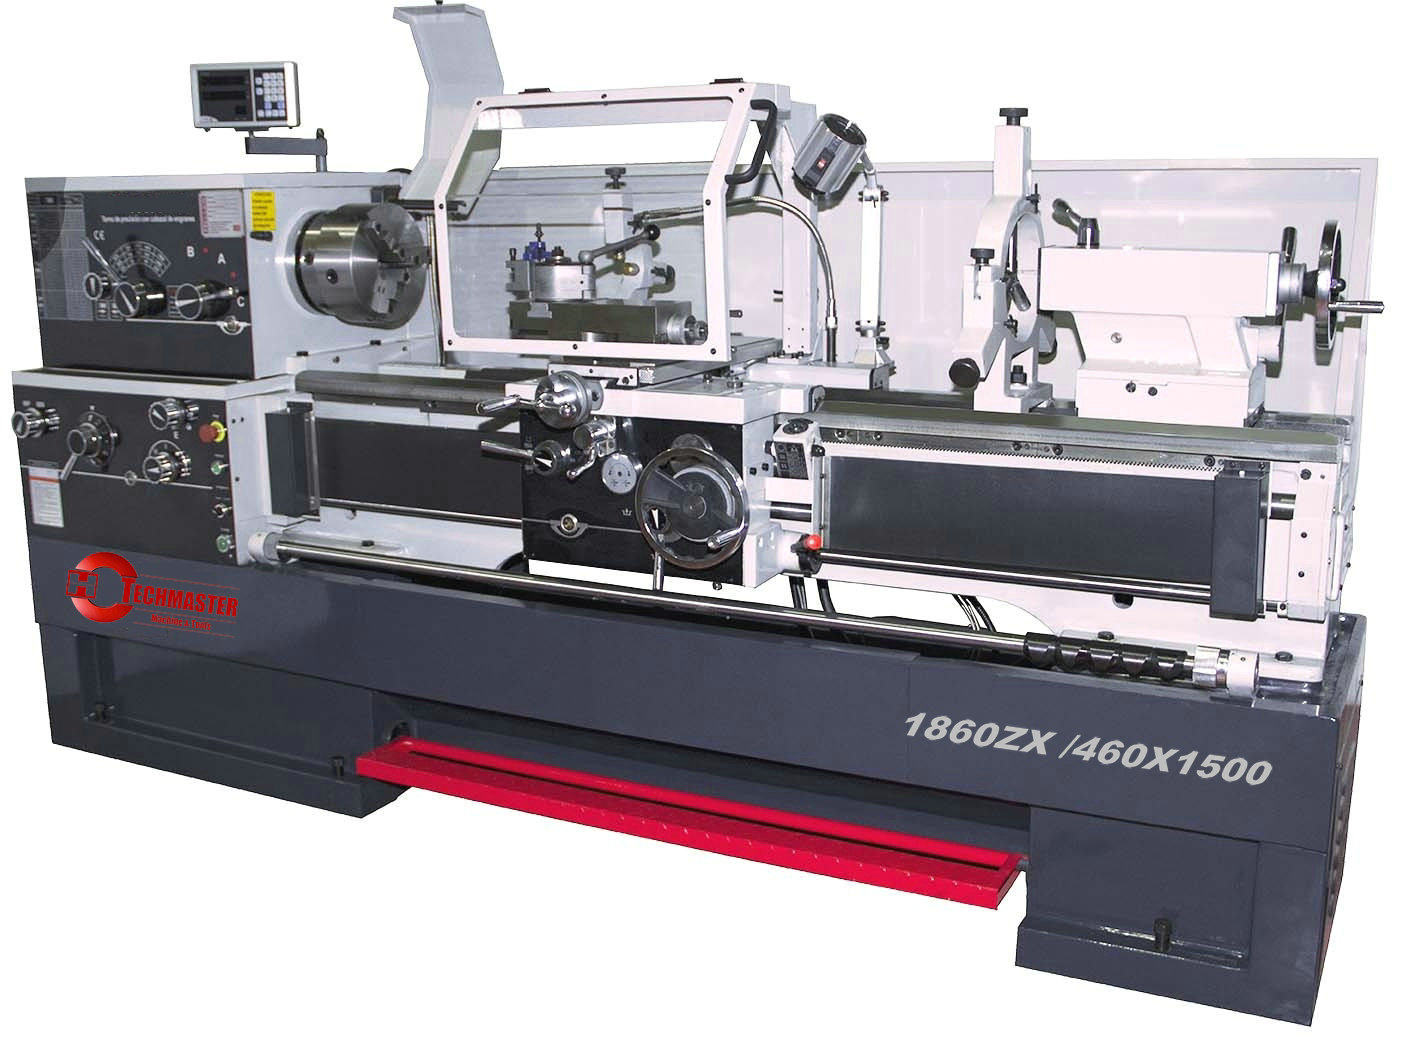 BIG BORE GAP BED LATHE C6236ZX-C6240ZX-C6246ZX